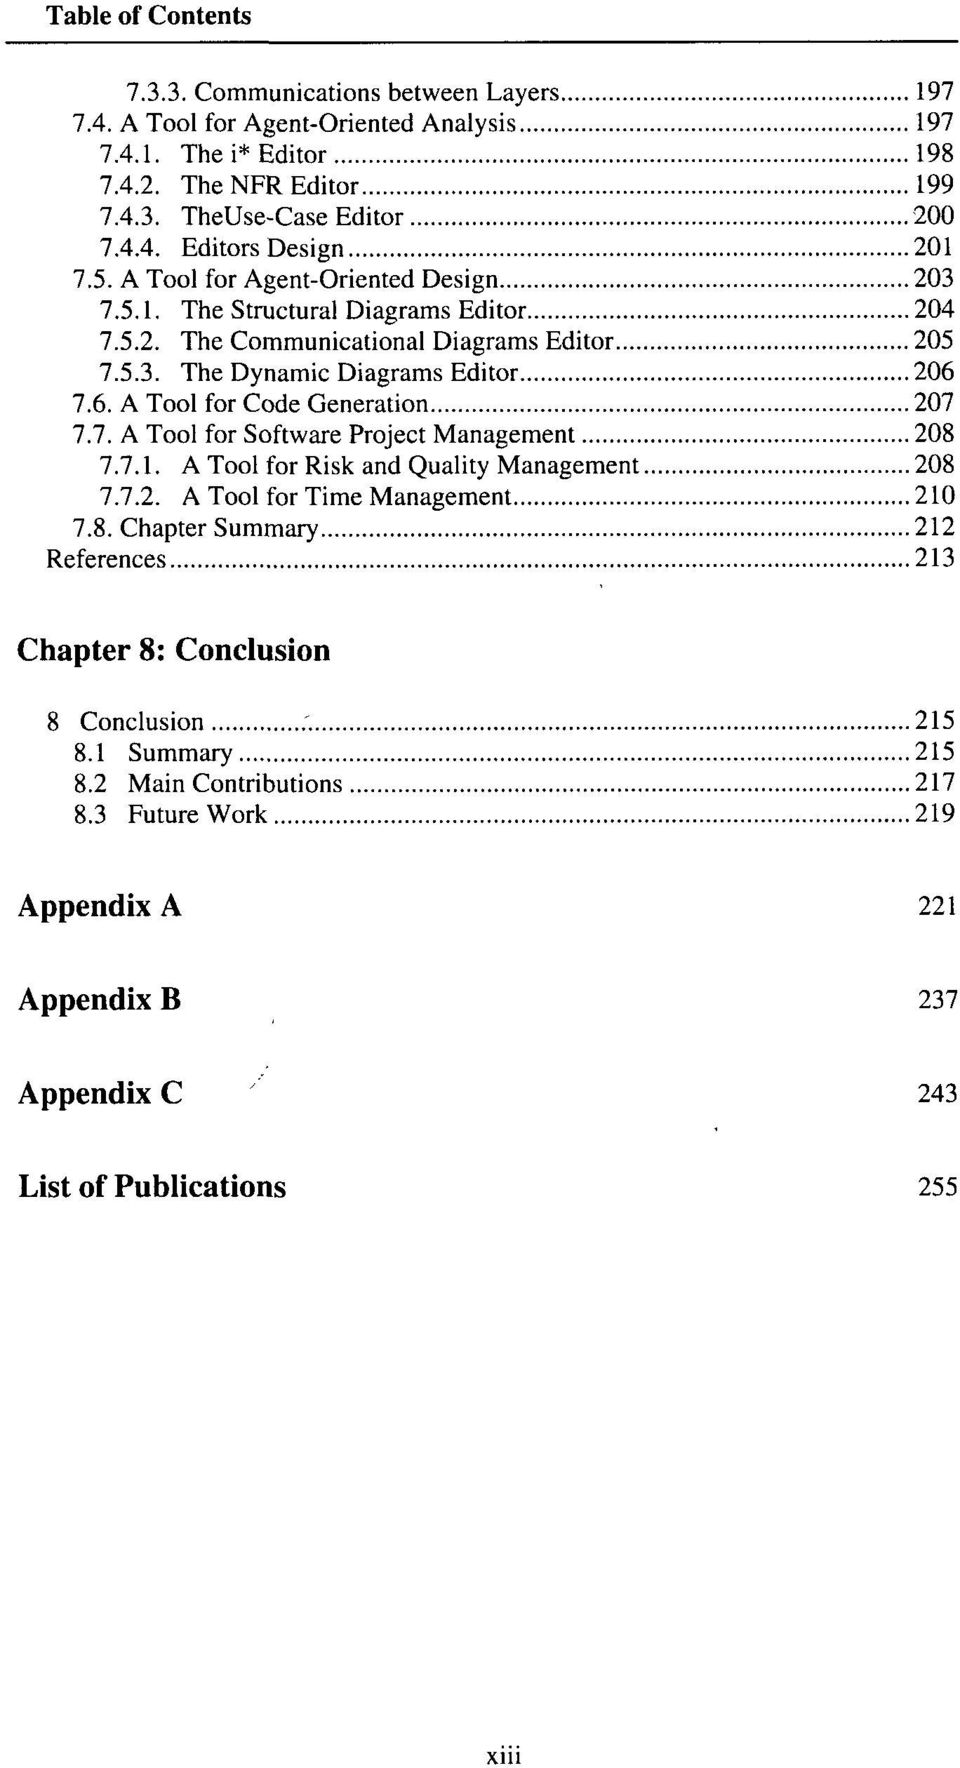 7.6. A Tool for Code Generation 207 7.7. A Tool for Software Project Management 208 7.7.1. A Tool for Risk and Quality Management 208 7.7.2. A Tool for Time Management 210 7.8. Chapter Summary 212 References 213 Chapter 8: Conclusion 8 Conclusion 215 8.